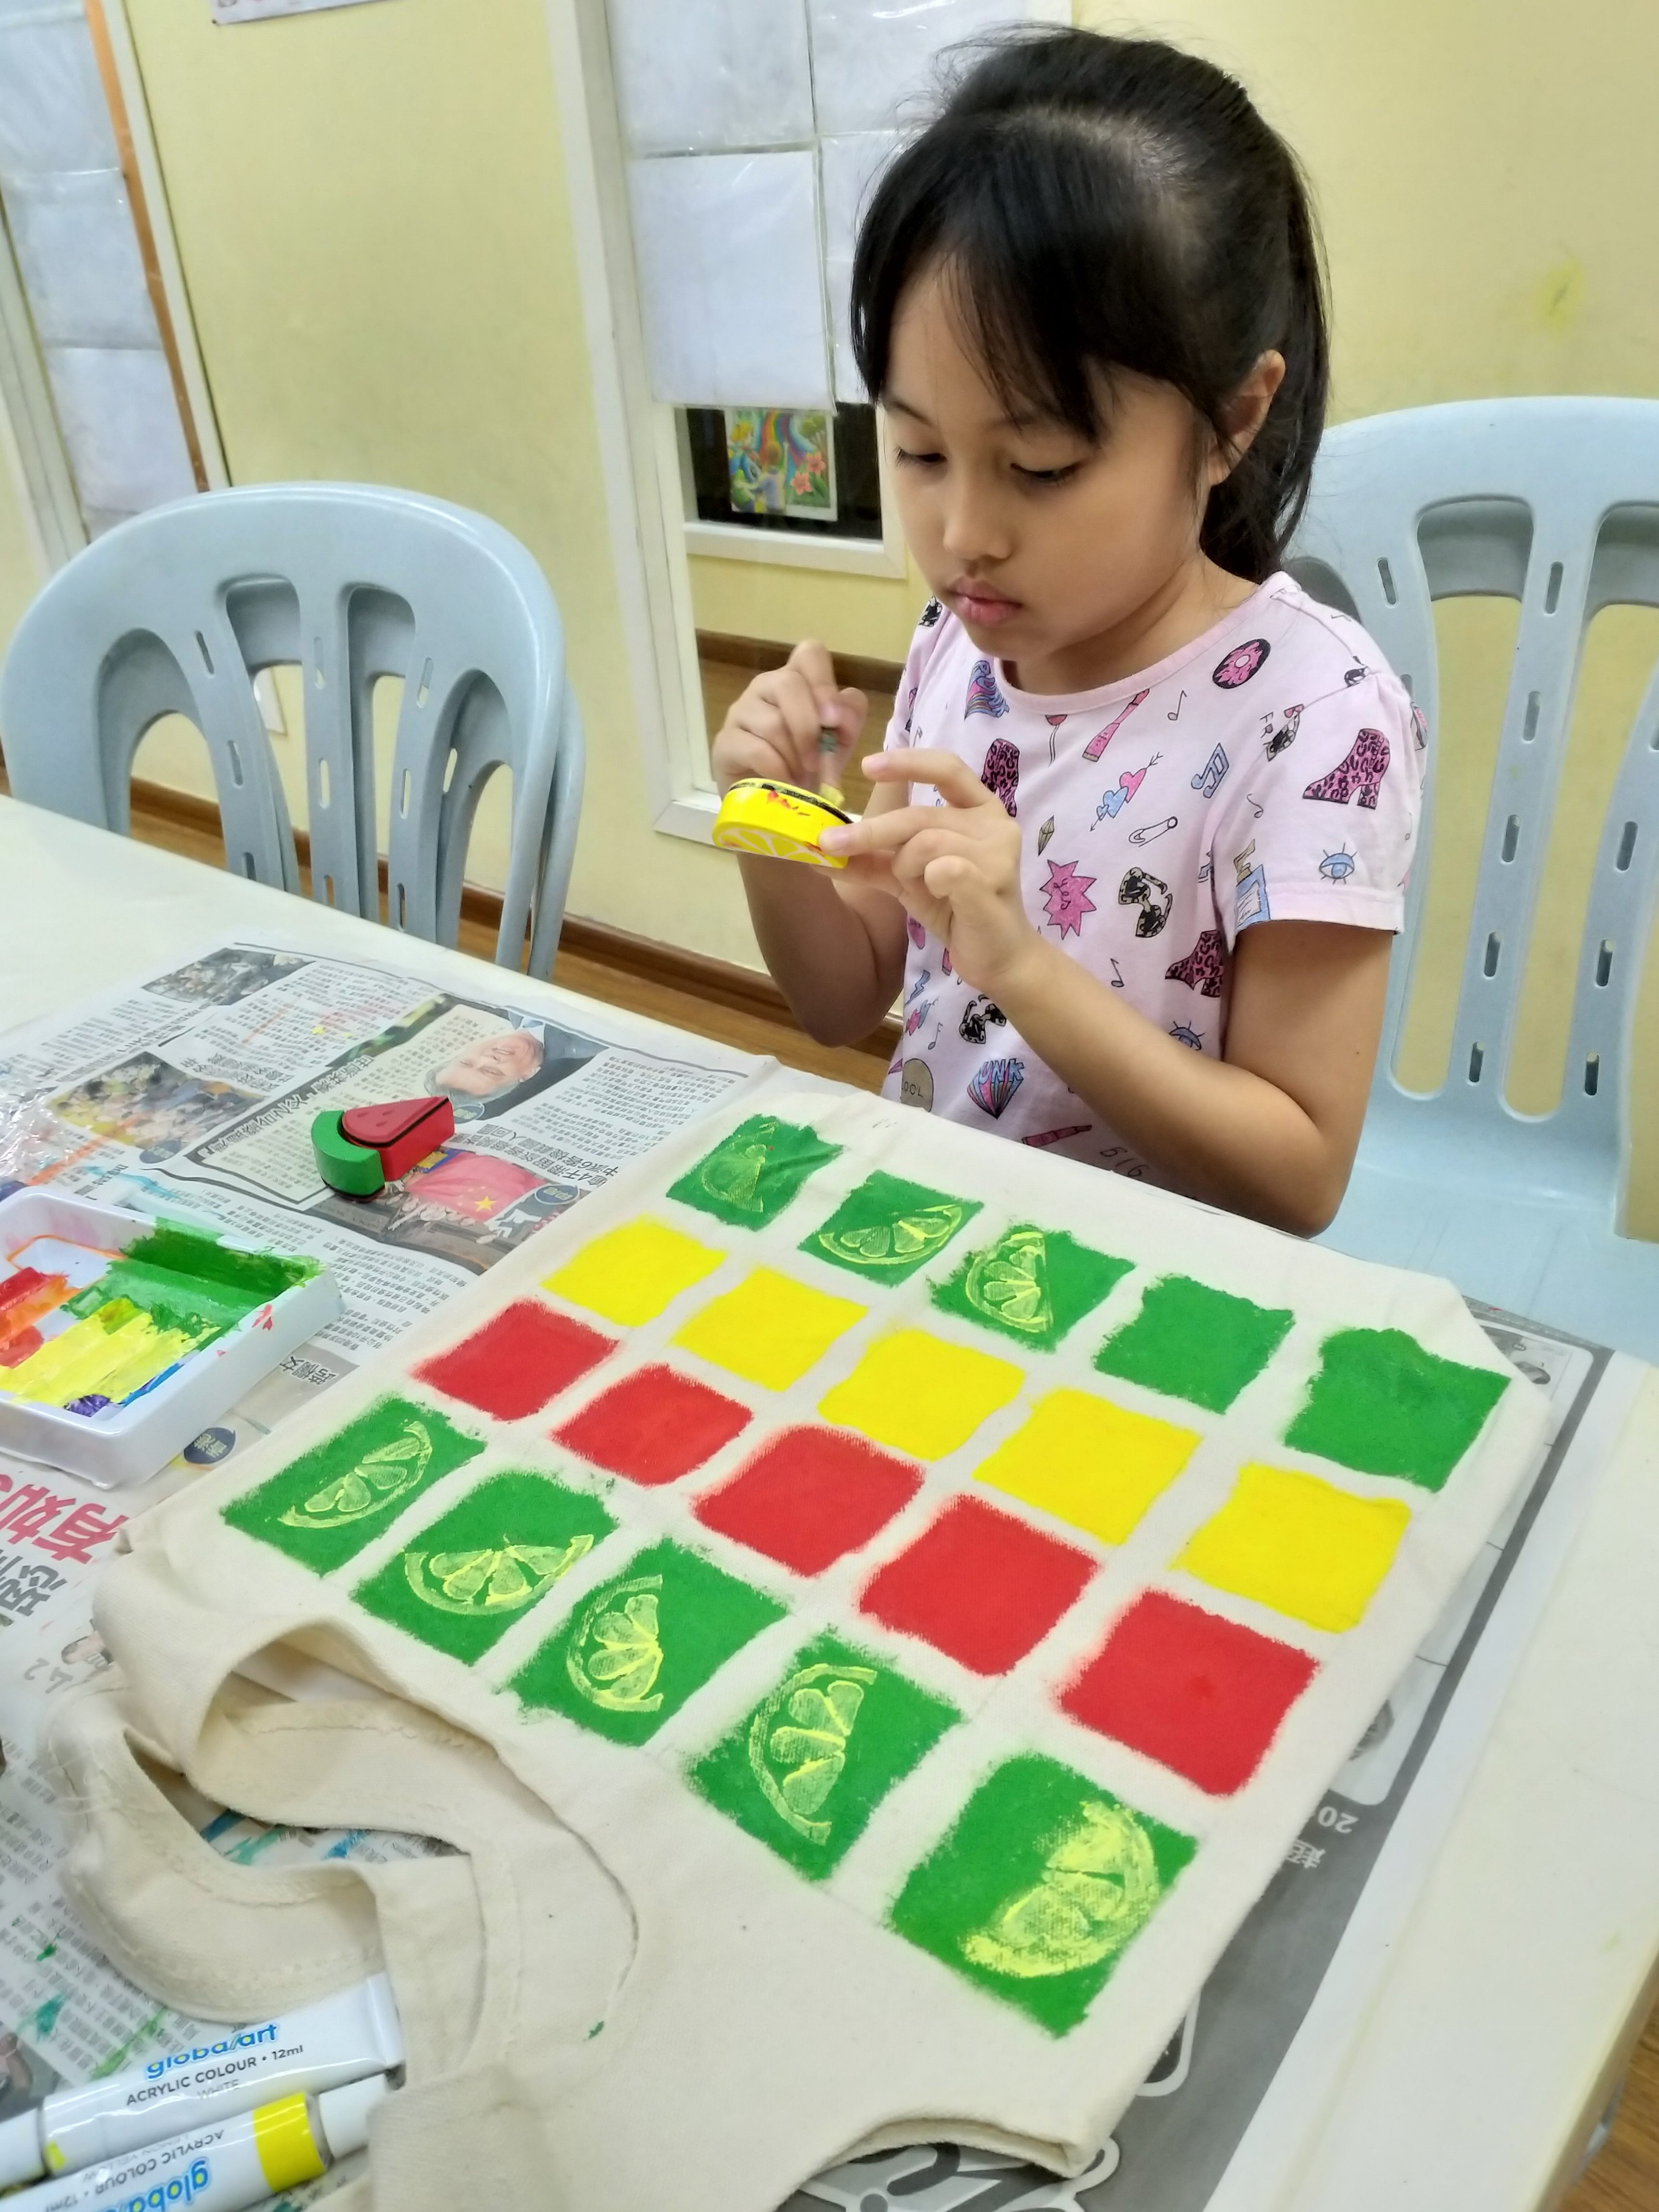 Deco Art Workshop….Student painting and designing the Tote Bag…